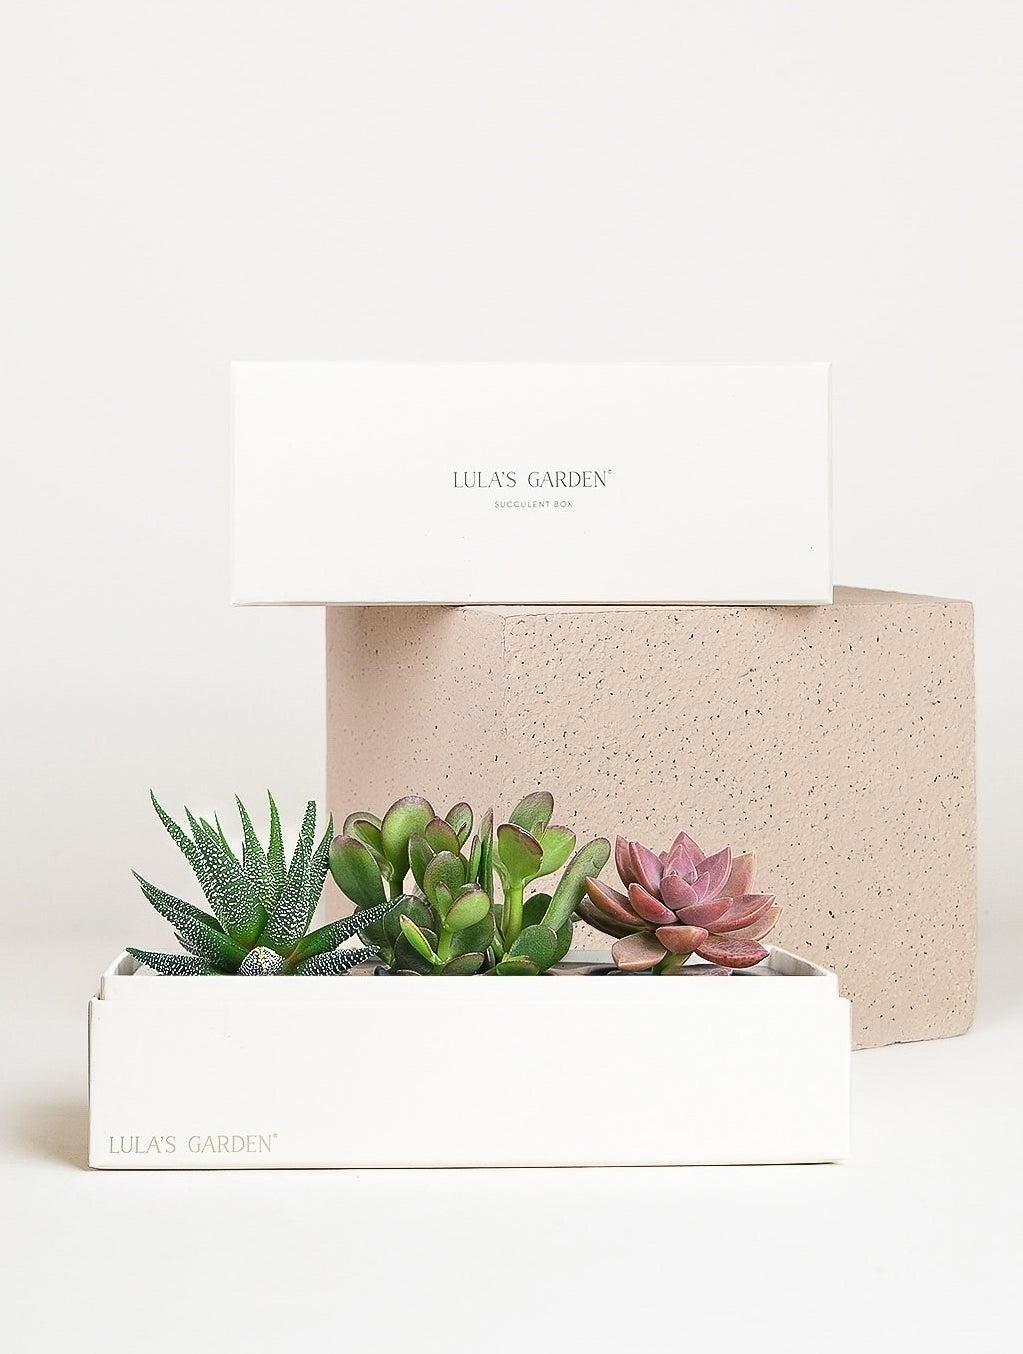 A jewel garden, consisting of three small pre-planted succulents in a box that measures about eight inches long